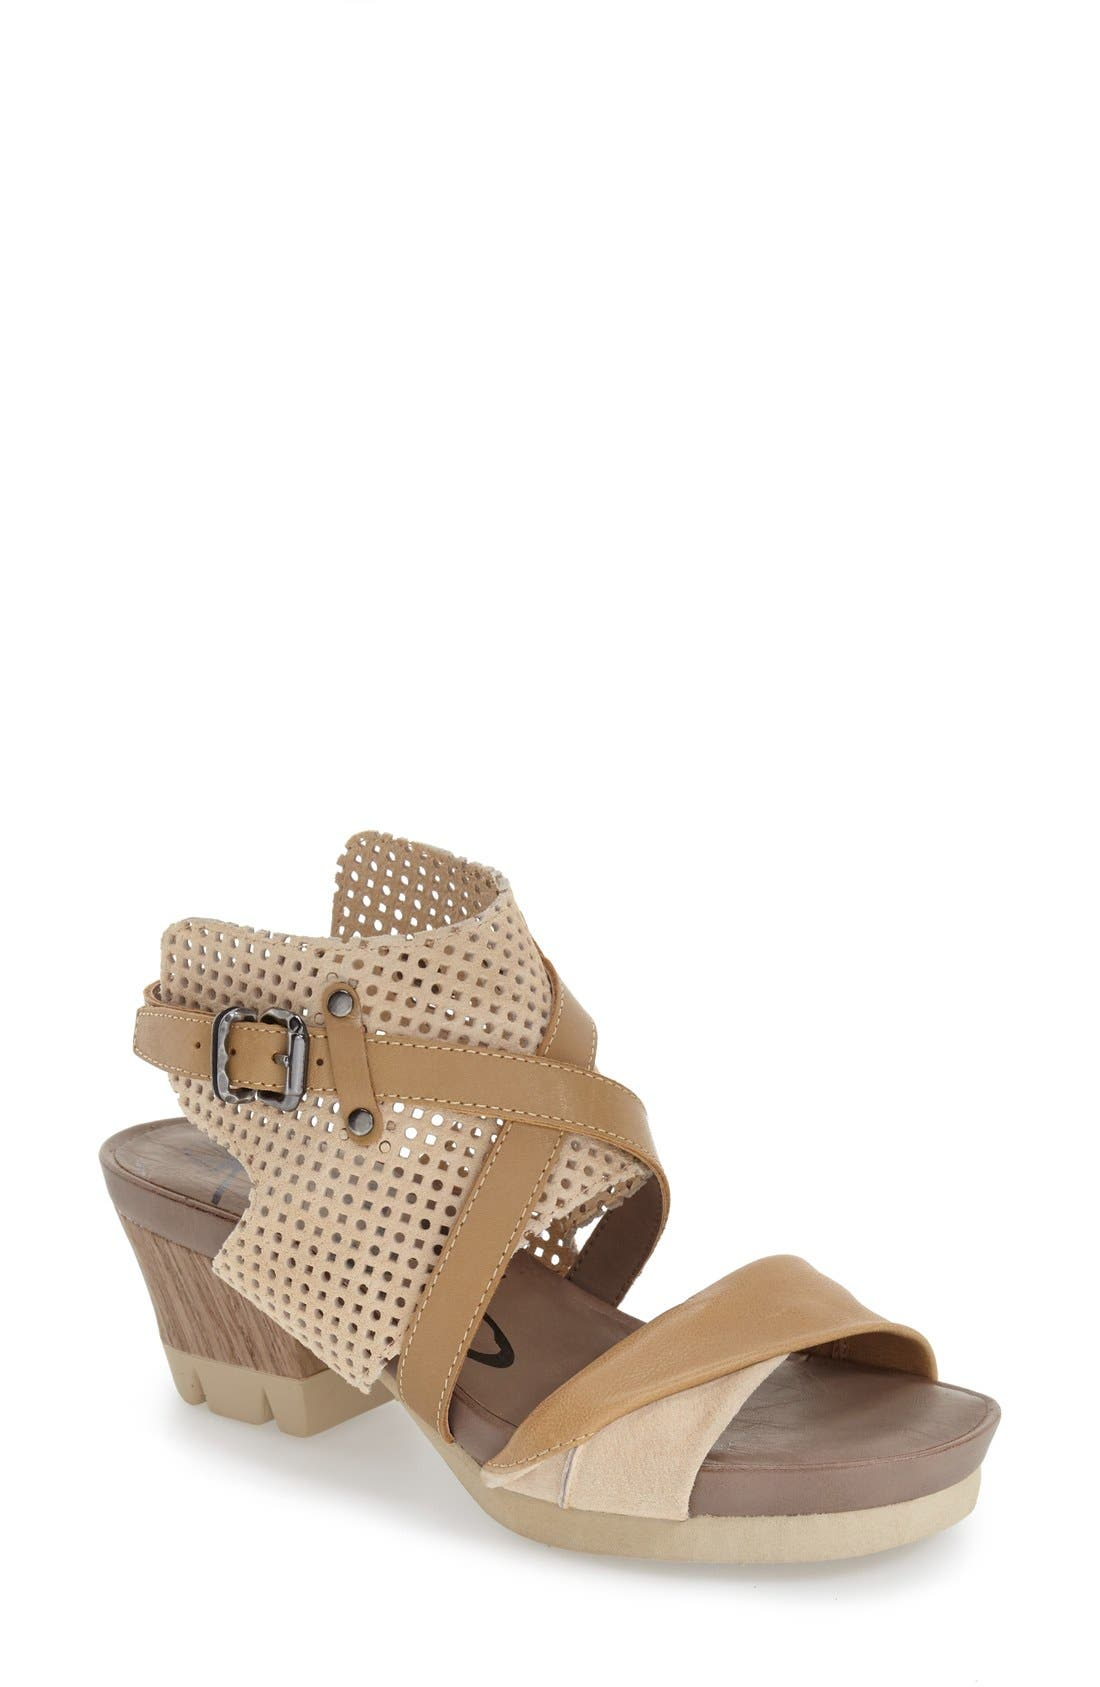 OTBT Take Off Sandal